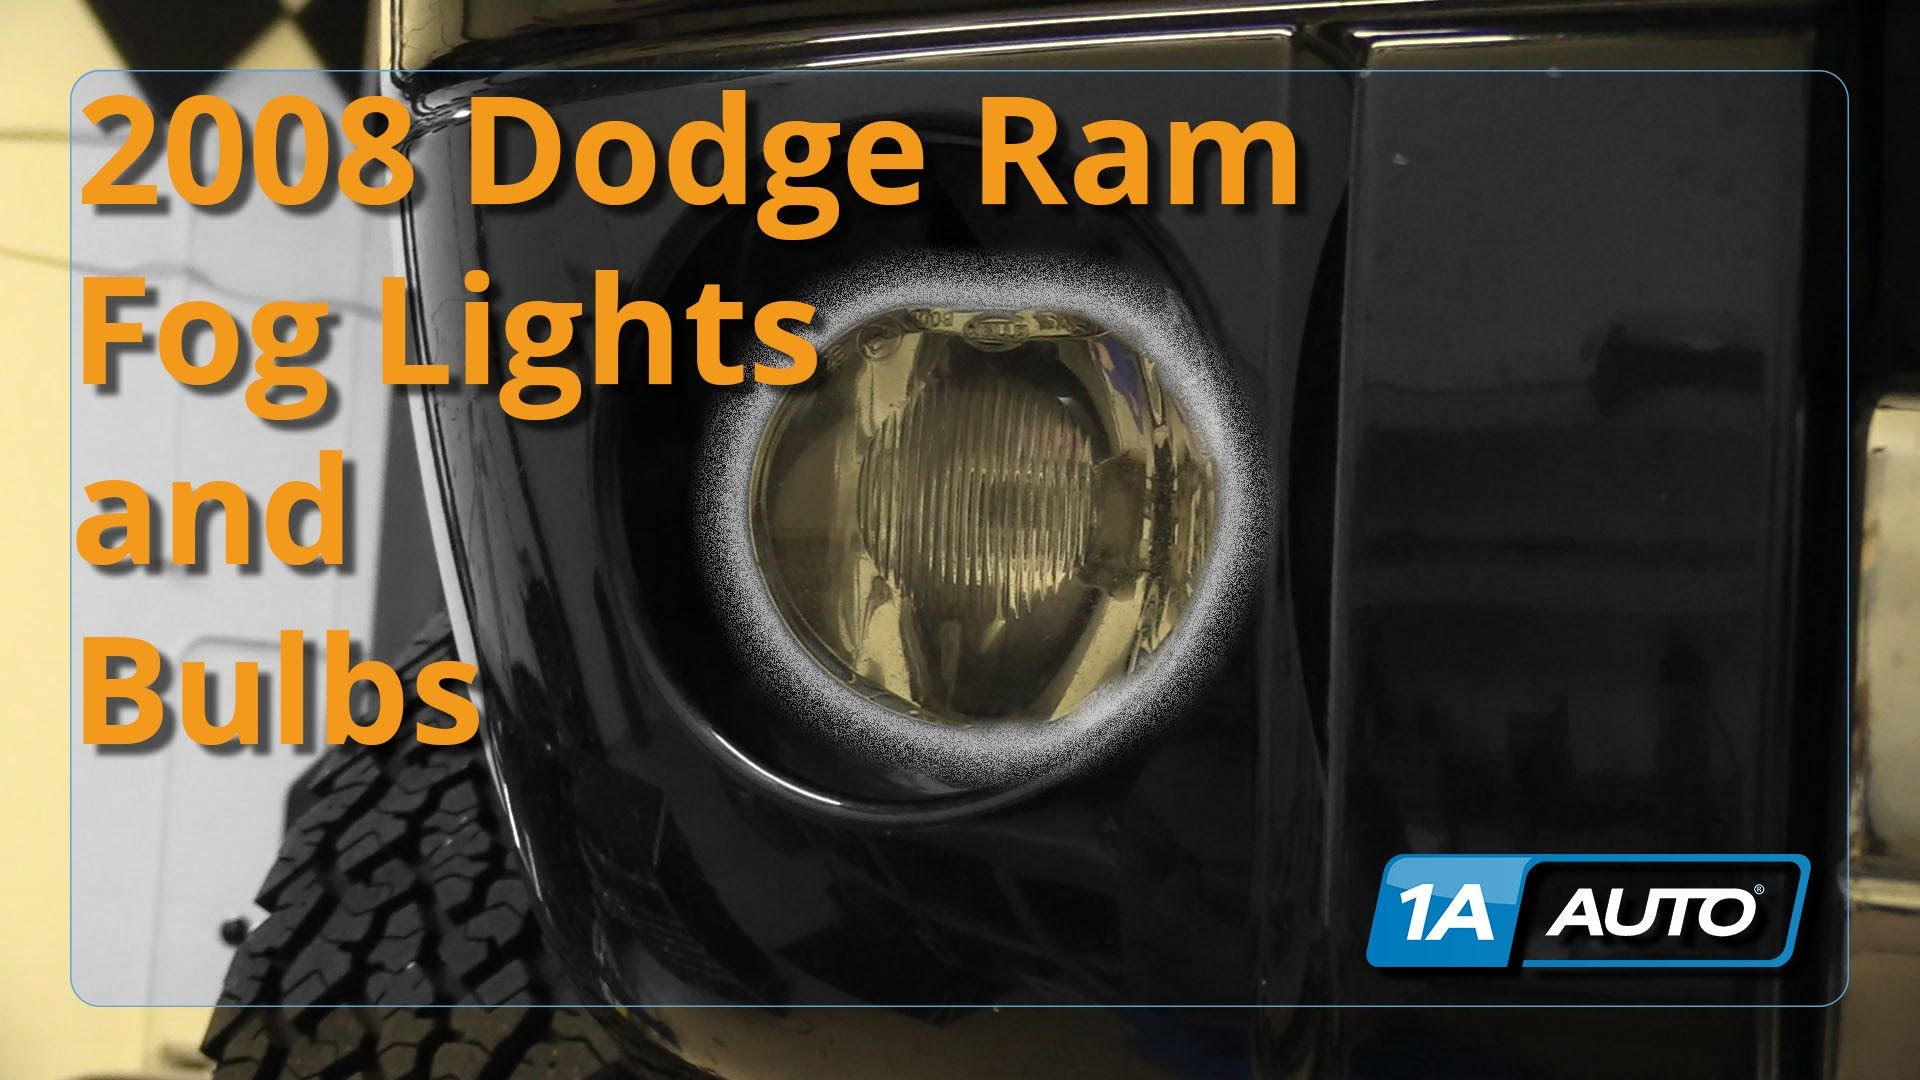 Awesome How To Install Replace Fog Lights 2002 08 Dodge Ram 1500 Buy Quality Auto Parts At 1aauto Com Dodge Ram Dodge Ram 1500 Ram 1500